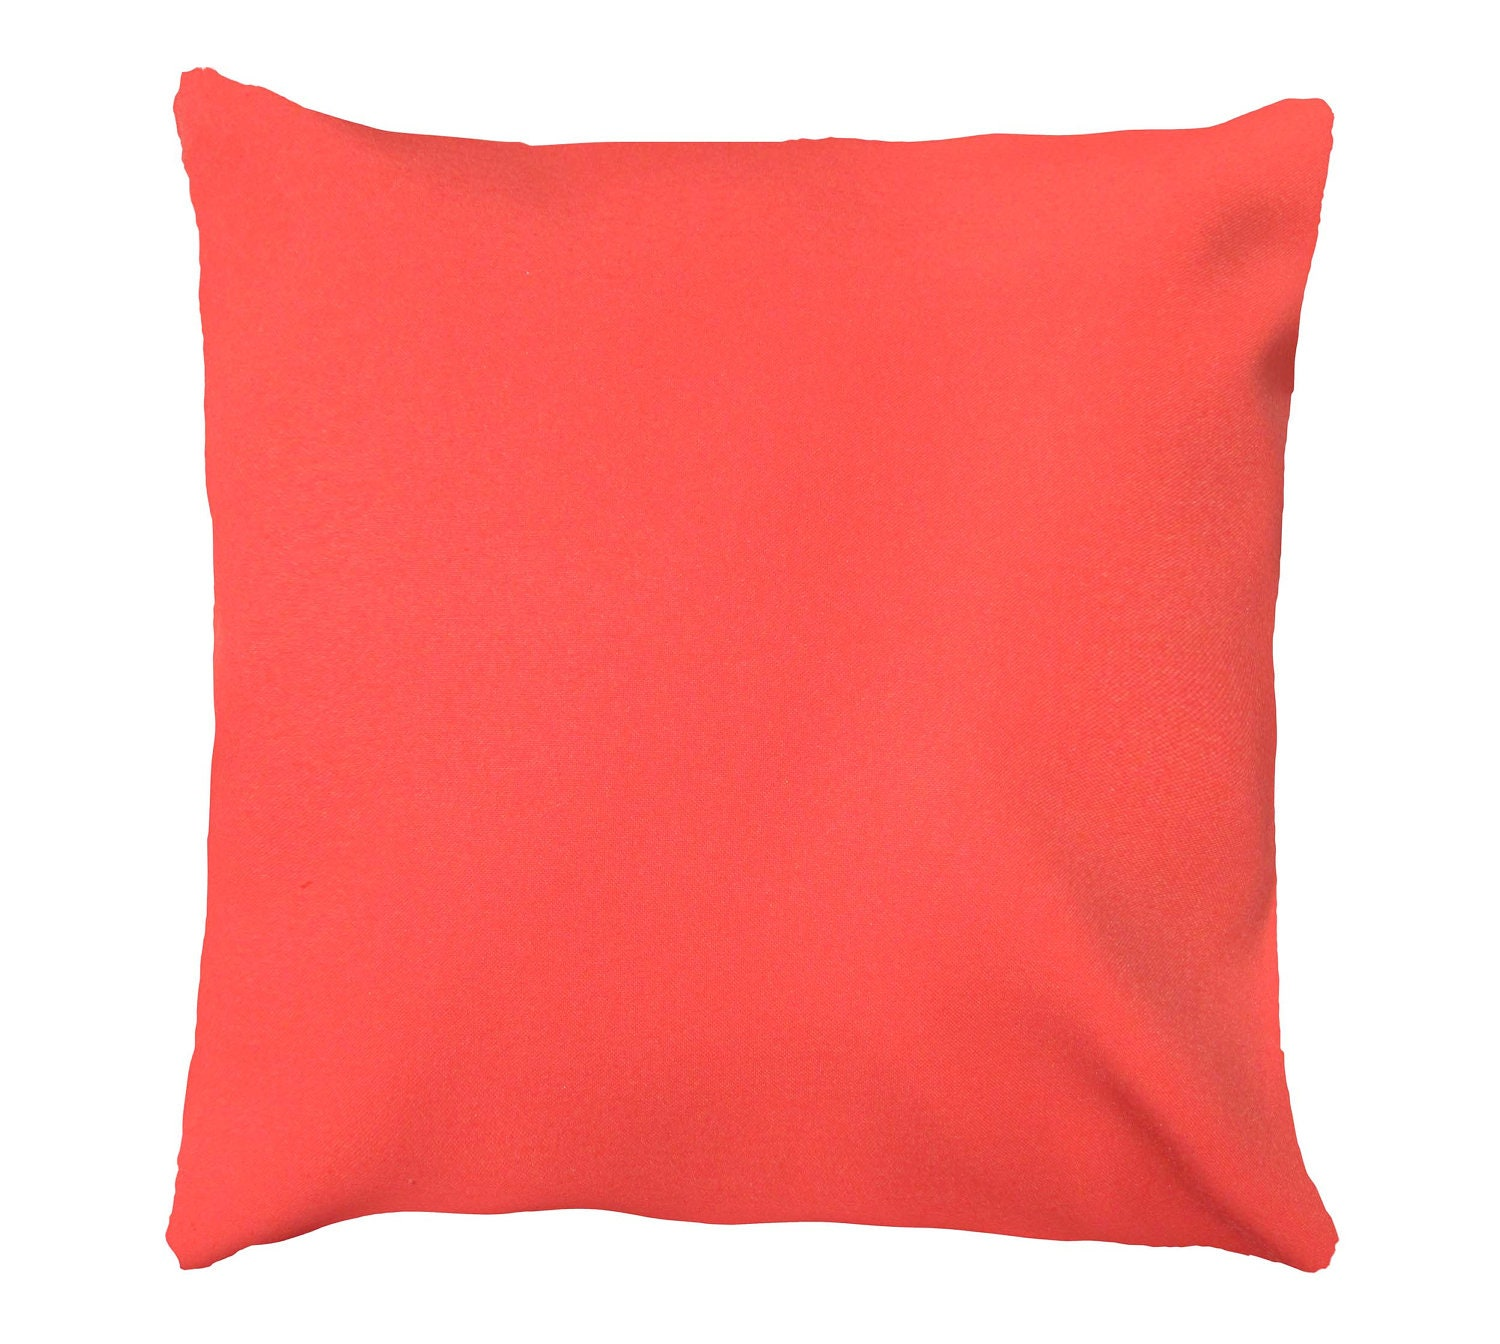 Coral Throw Pillow Cover. Pillow Cover Coral Solid Pillow